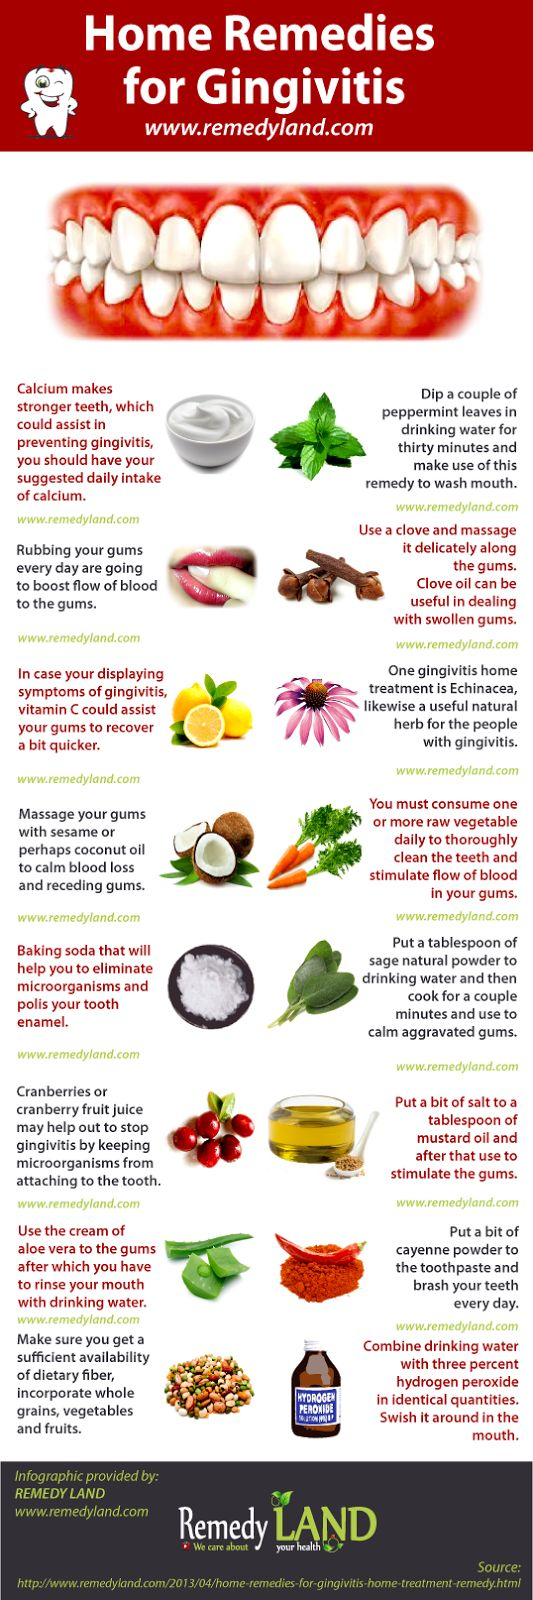 http://www.remedyland.com/2013/04/home-remedies-for-gingivitis-home-treatment-remedy.html Gingivitis comprehensive database of all possible home remedies for gingivitis #gingivitis ========================== Warning to all scrapers, do not change source of infographics and do not try to modify infographics, we are going to put your pin down and take further legal actions. The risk is greater than the potential profit.